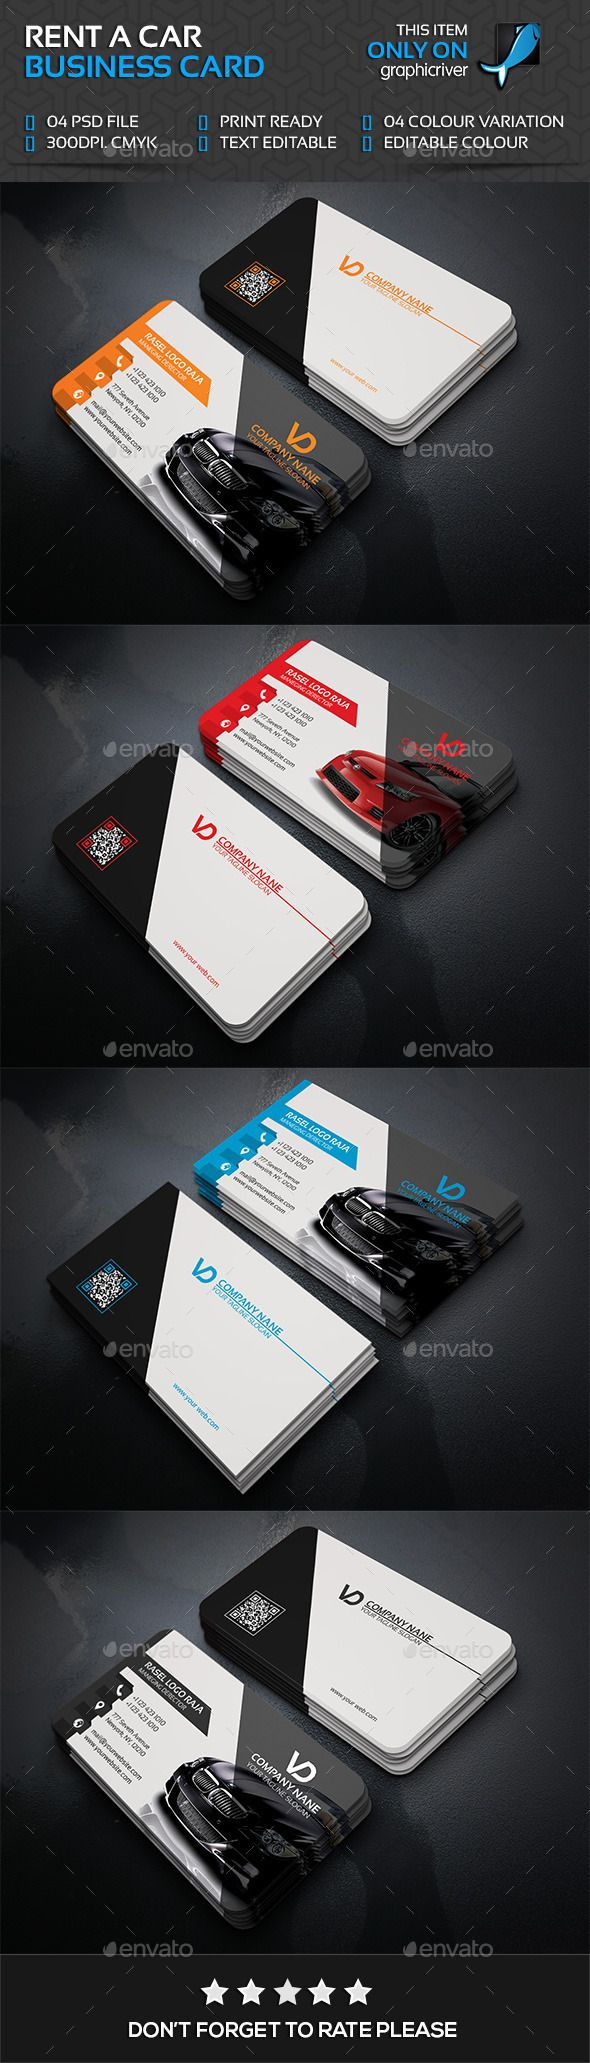 rant a car business card template psd visitcard design download http